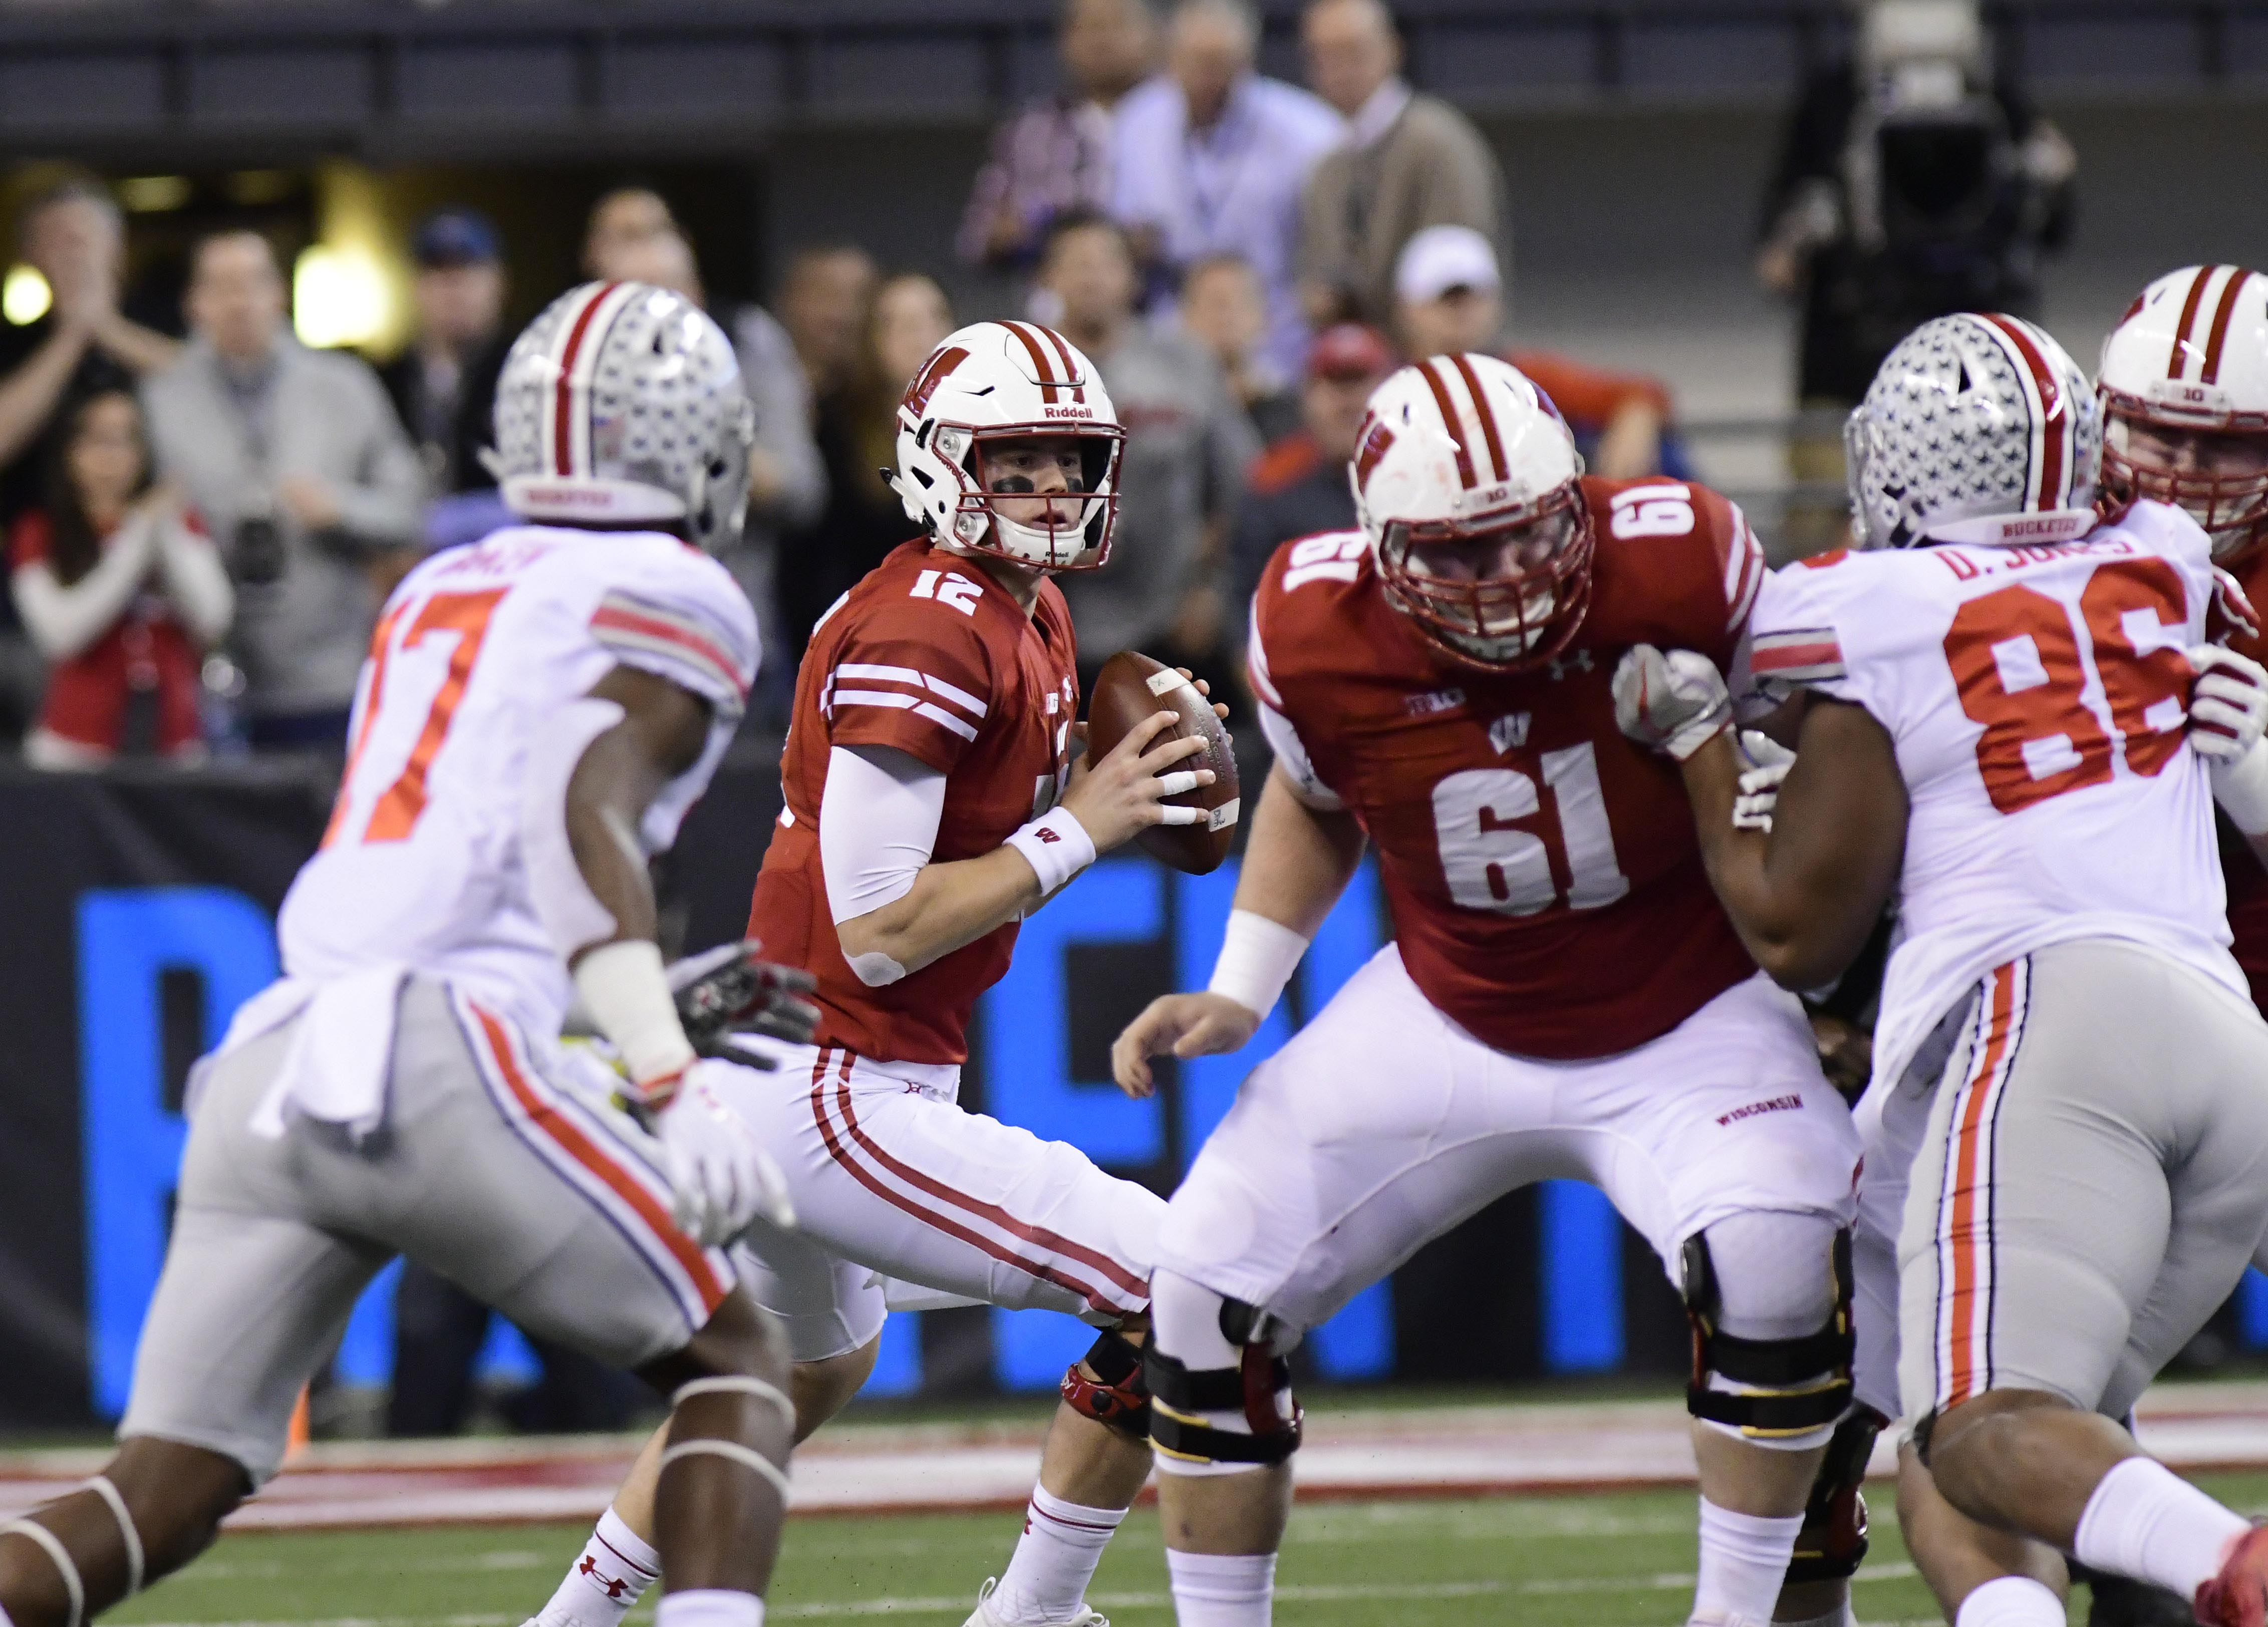 Dec 2, 2017; Indianapolis, IN, USA; Wisconsin Badger quarterback Alex Hornibrook (12) drops back to pass in the first quarter against Ohio State in the Big Ten championship game at Lucas Oil Stadium. Mandatory Credit: Thomas J. Russo-USA TODAY Sports